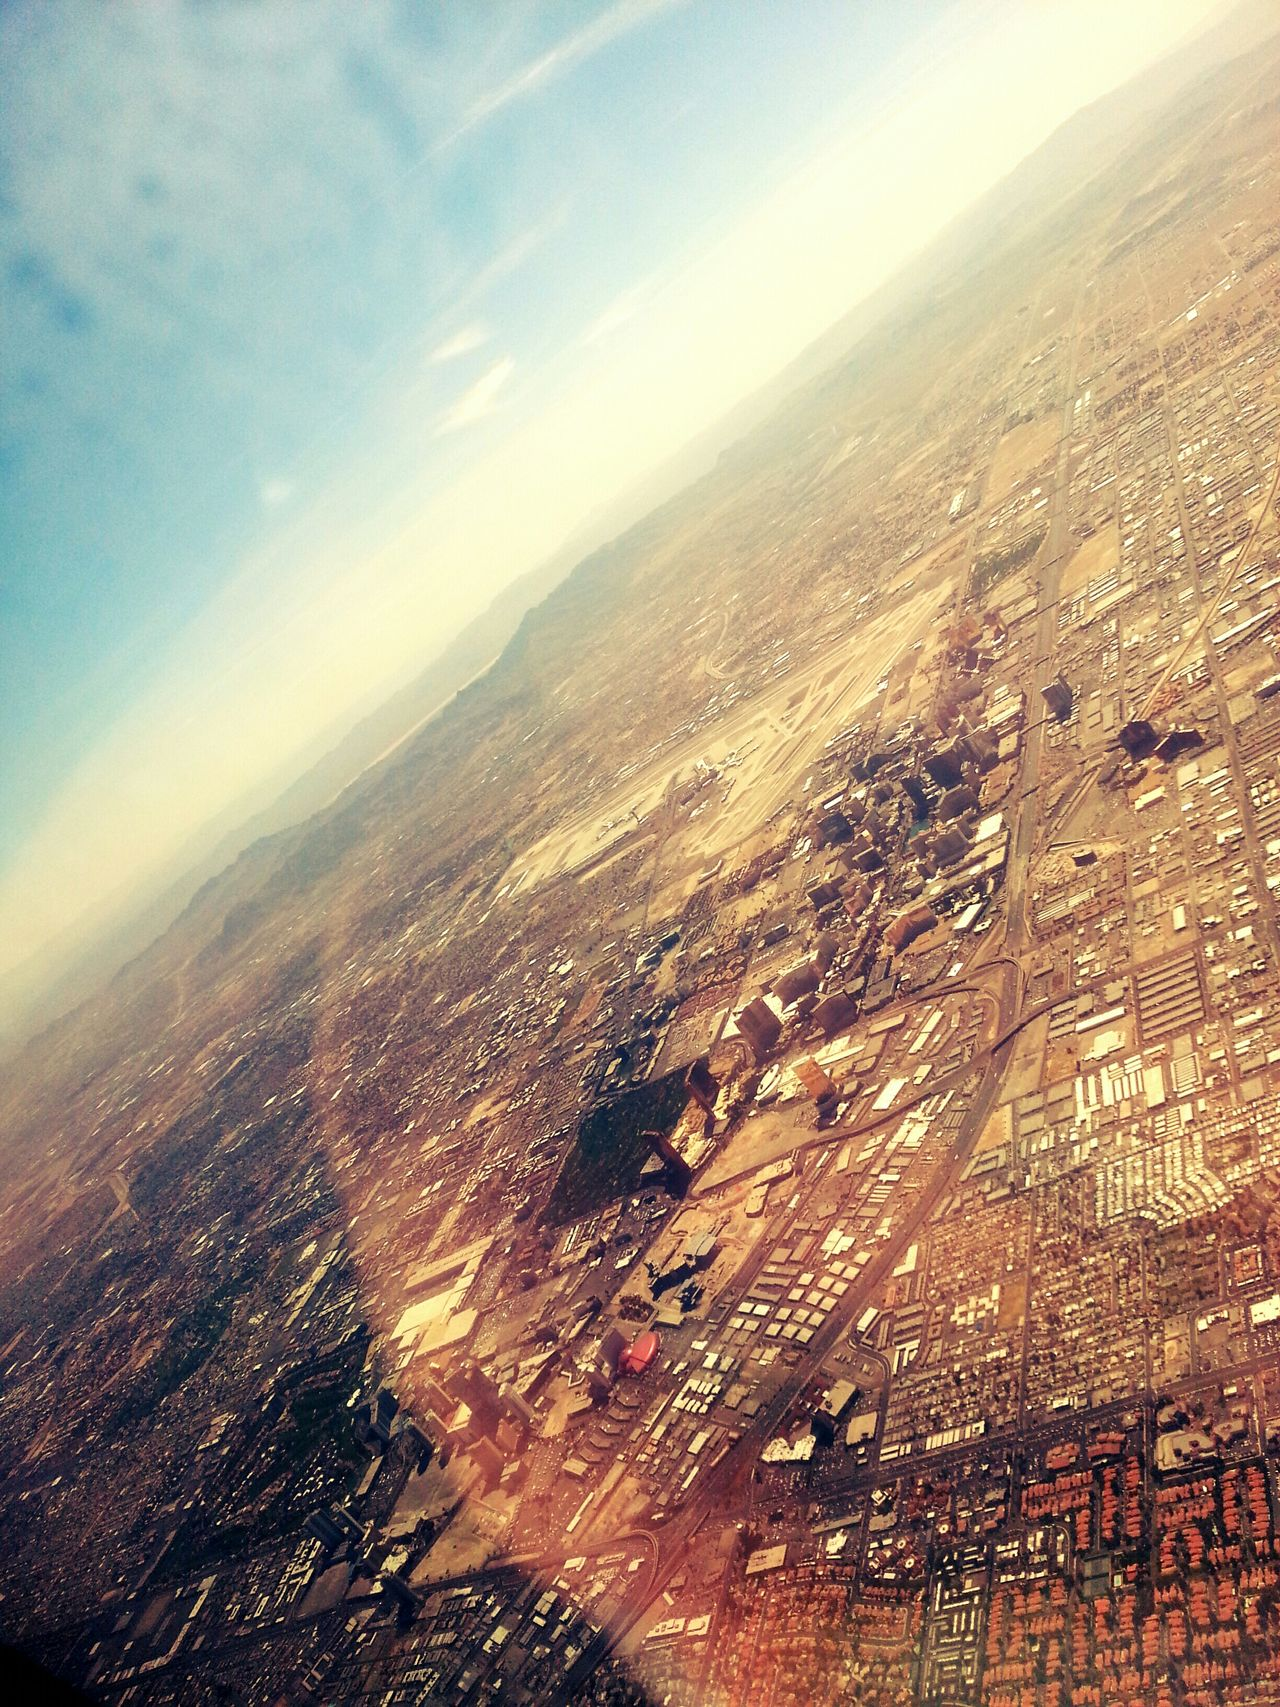 View From A Plane Vegas  From An Airplane Window City In The Desert Deserts Around The World